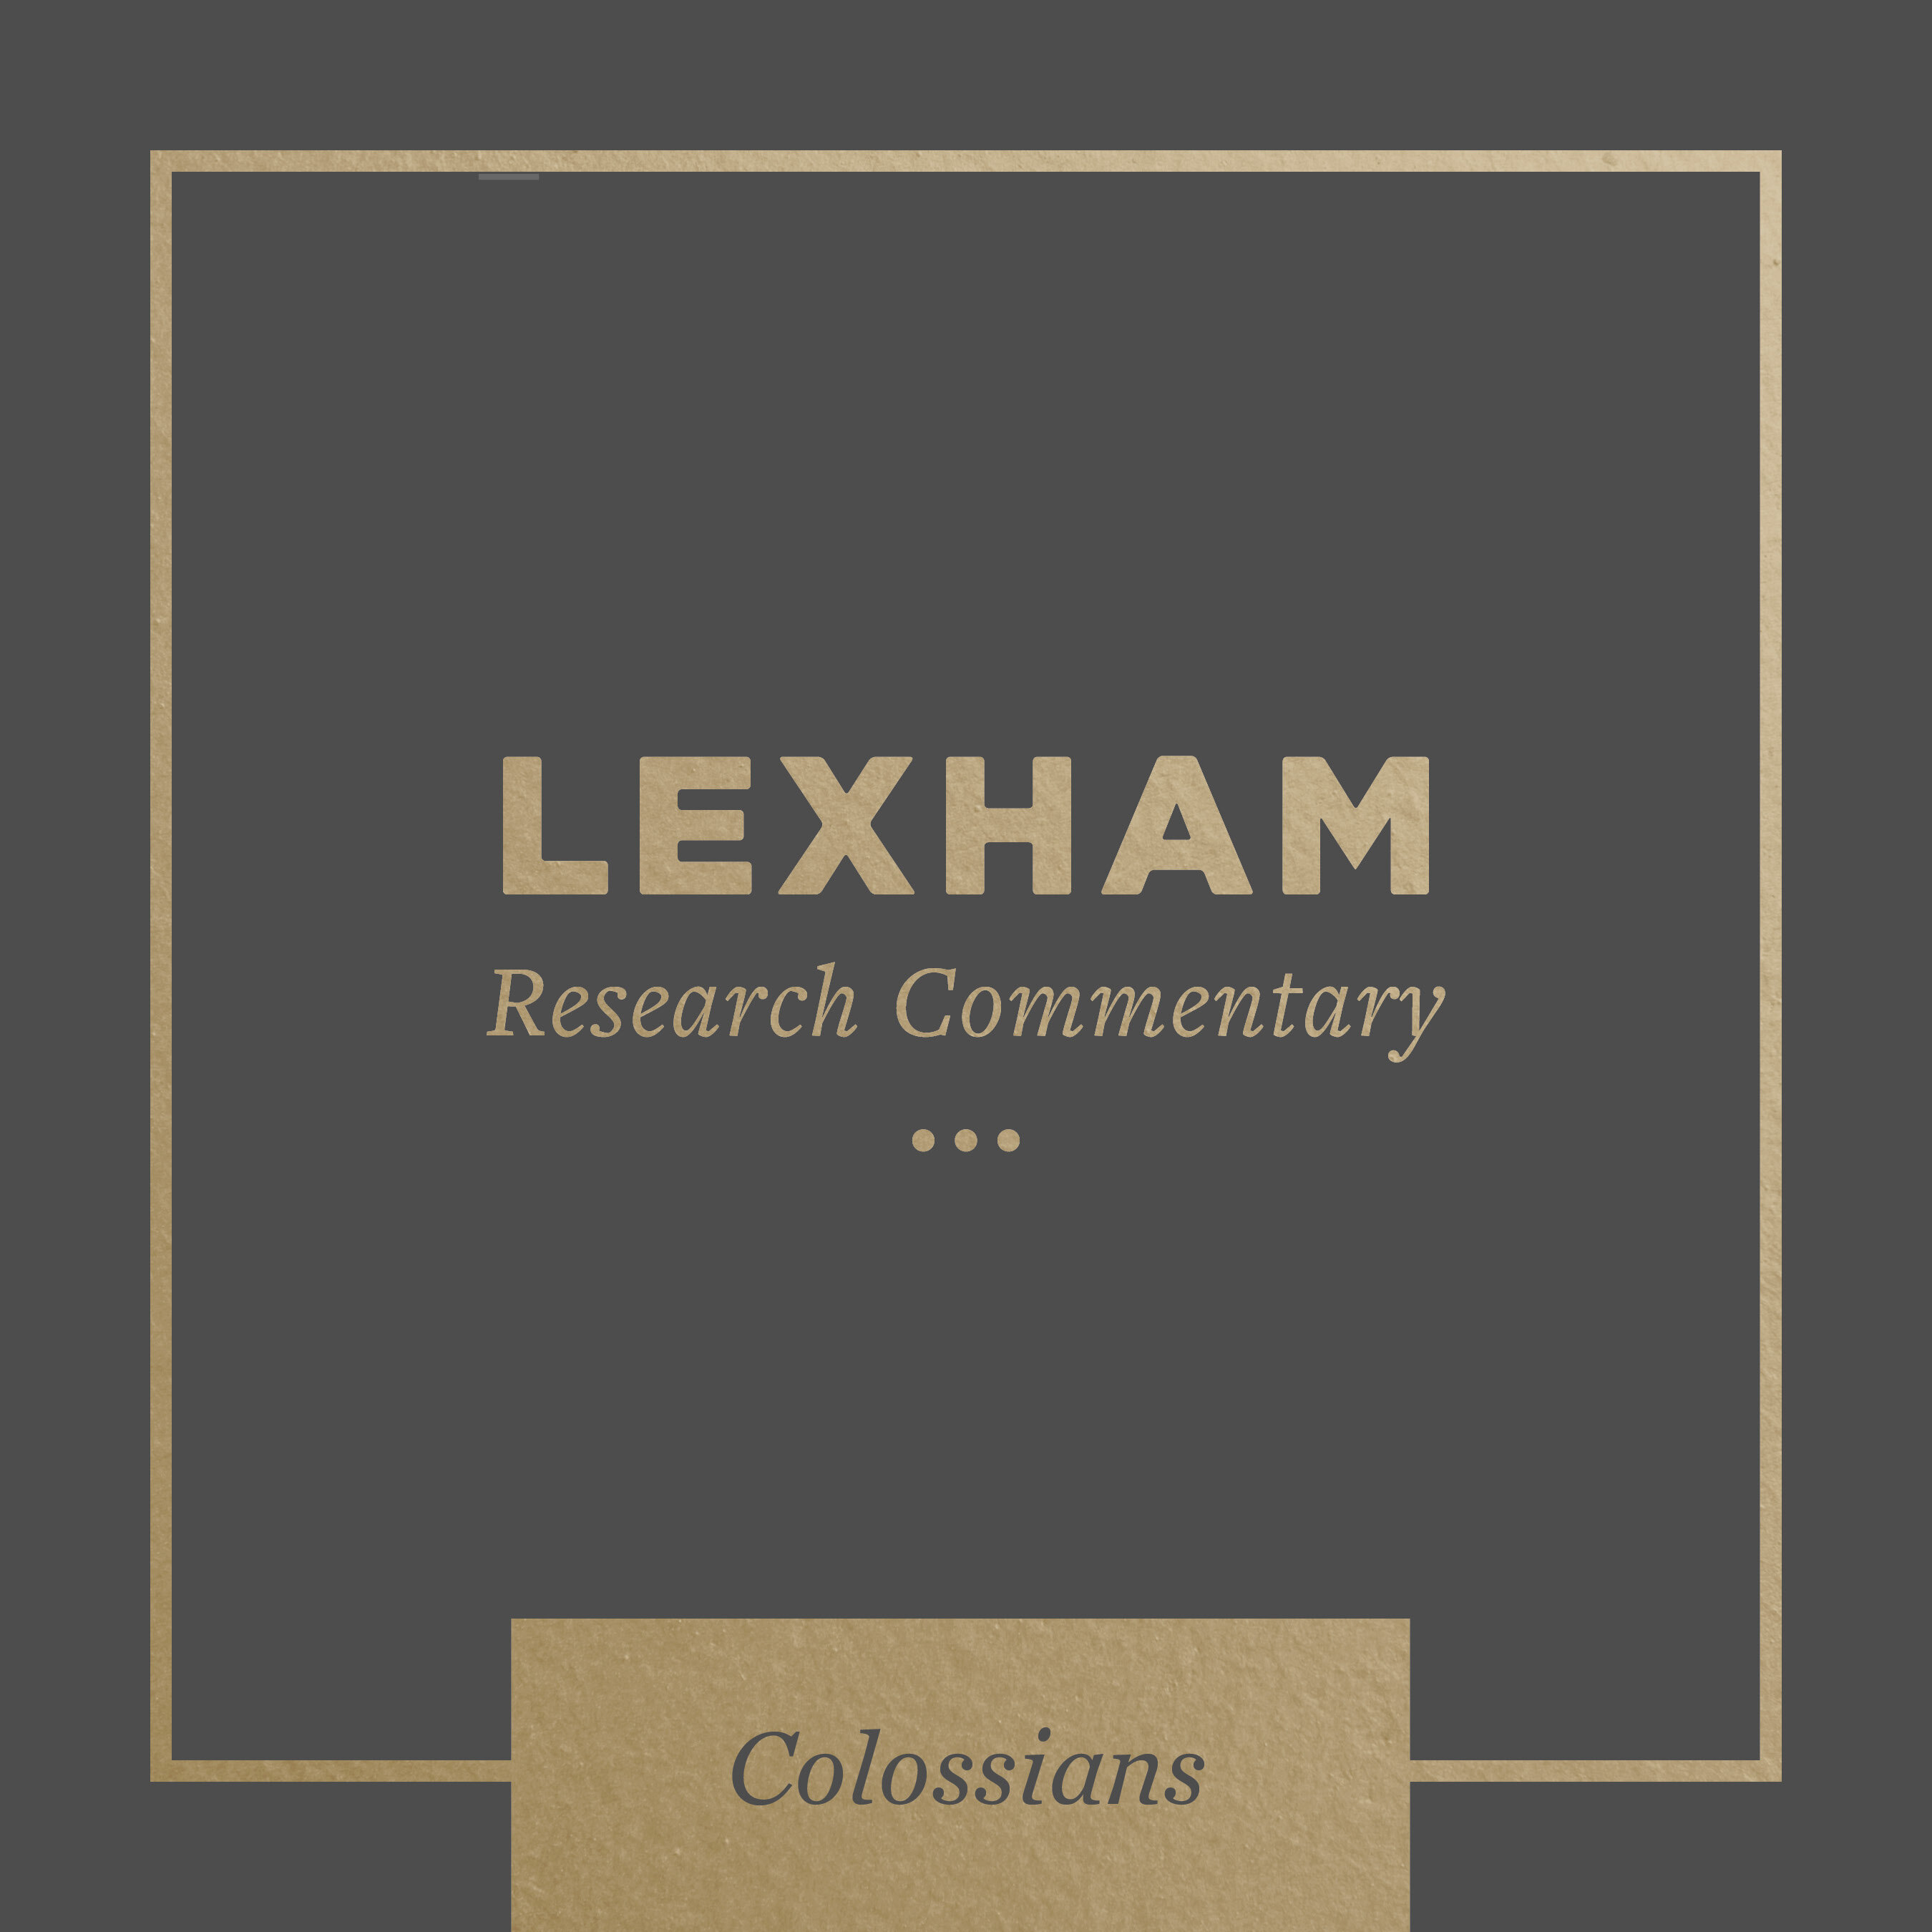 Lexham Research Commentary: Colossians